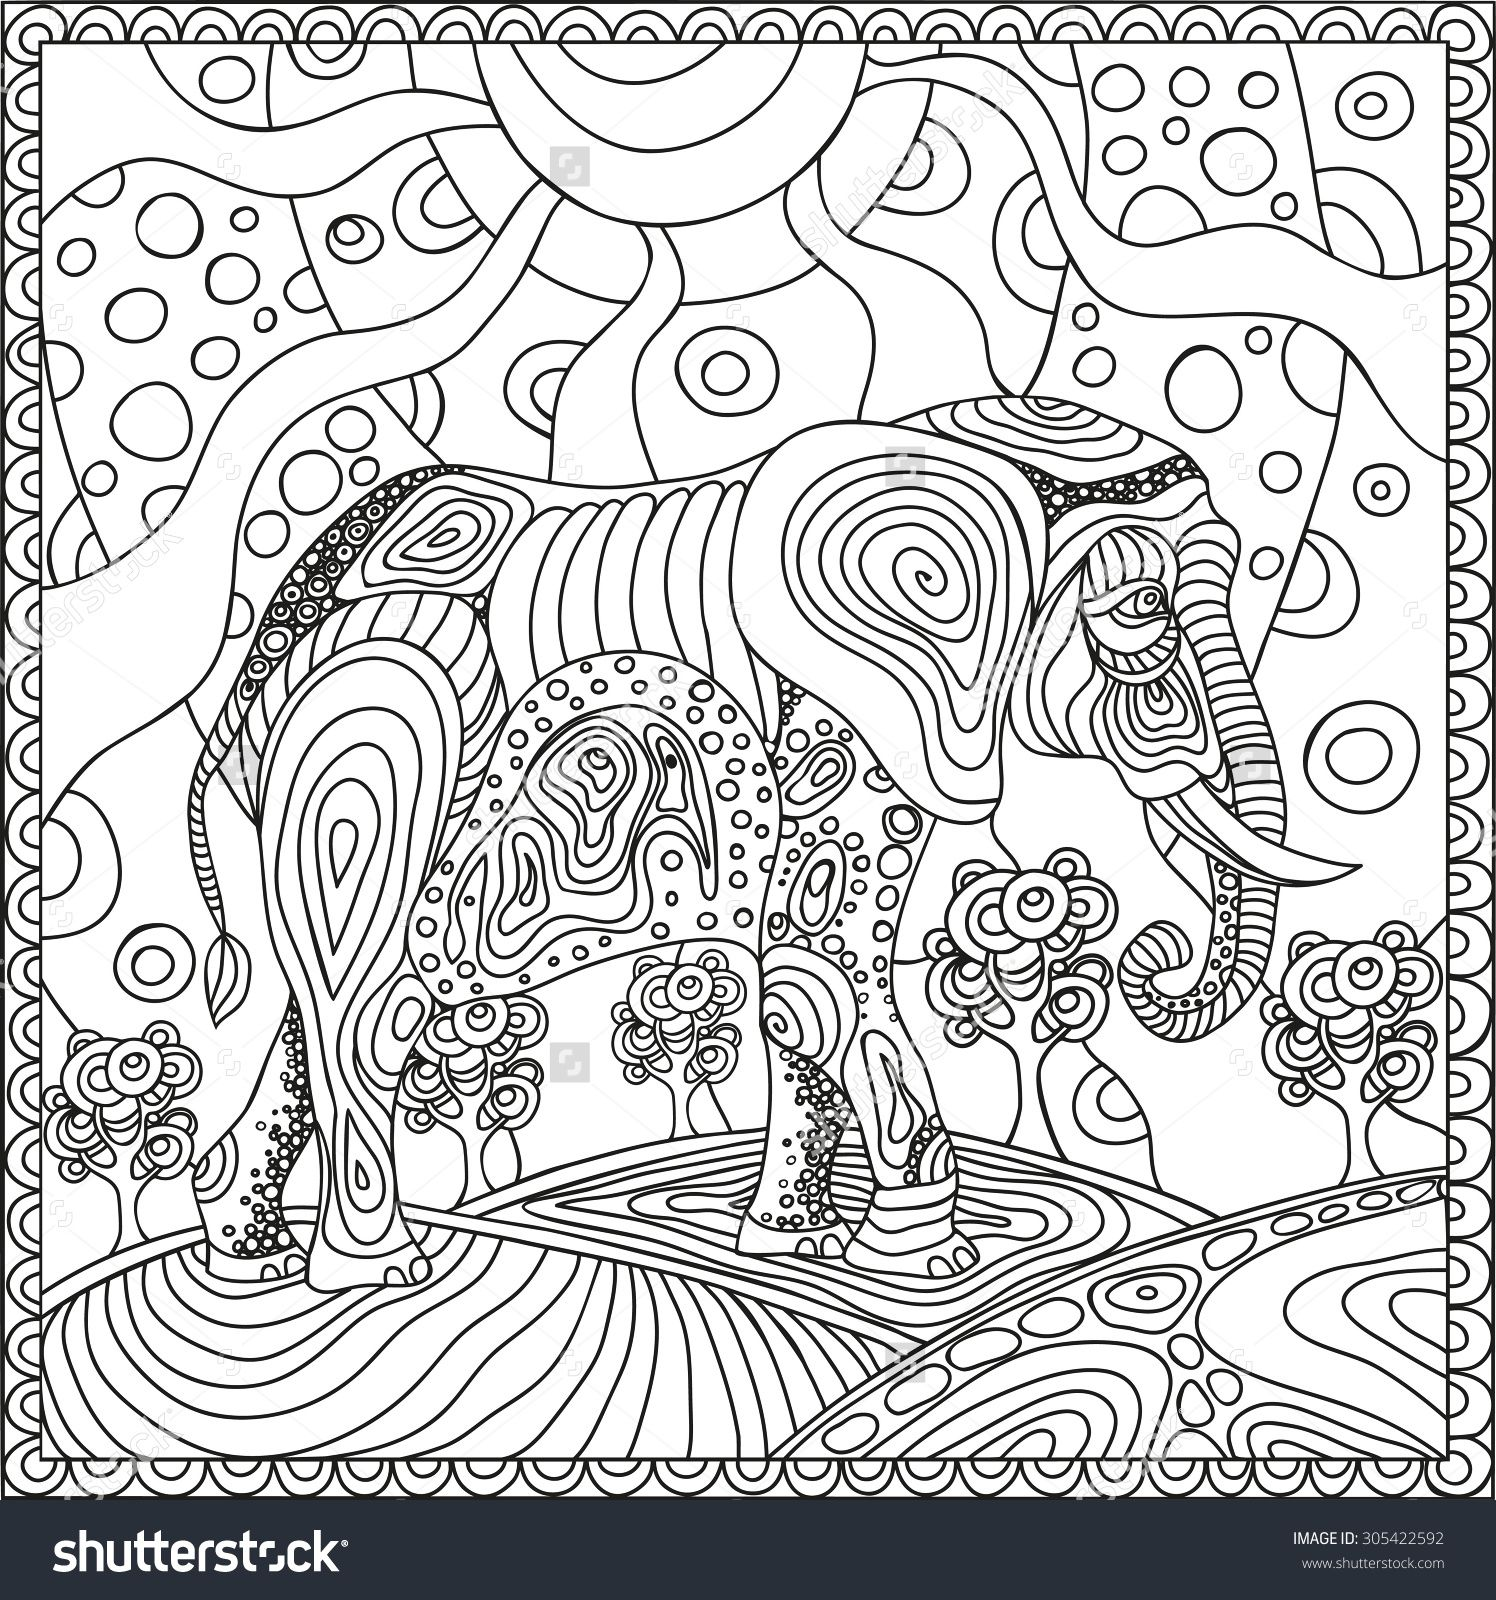 elephant zen doodle coloring page elephant coloring pages for